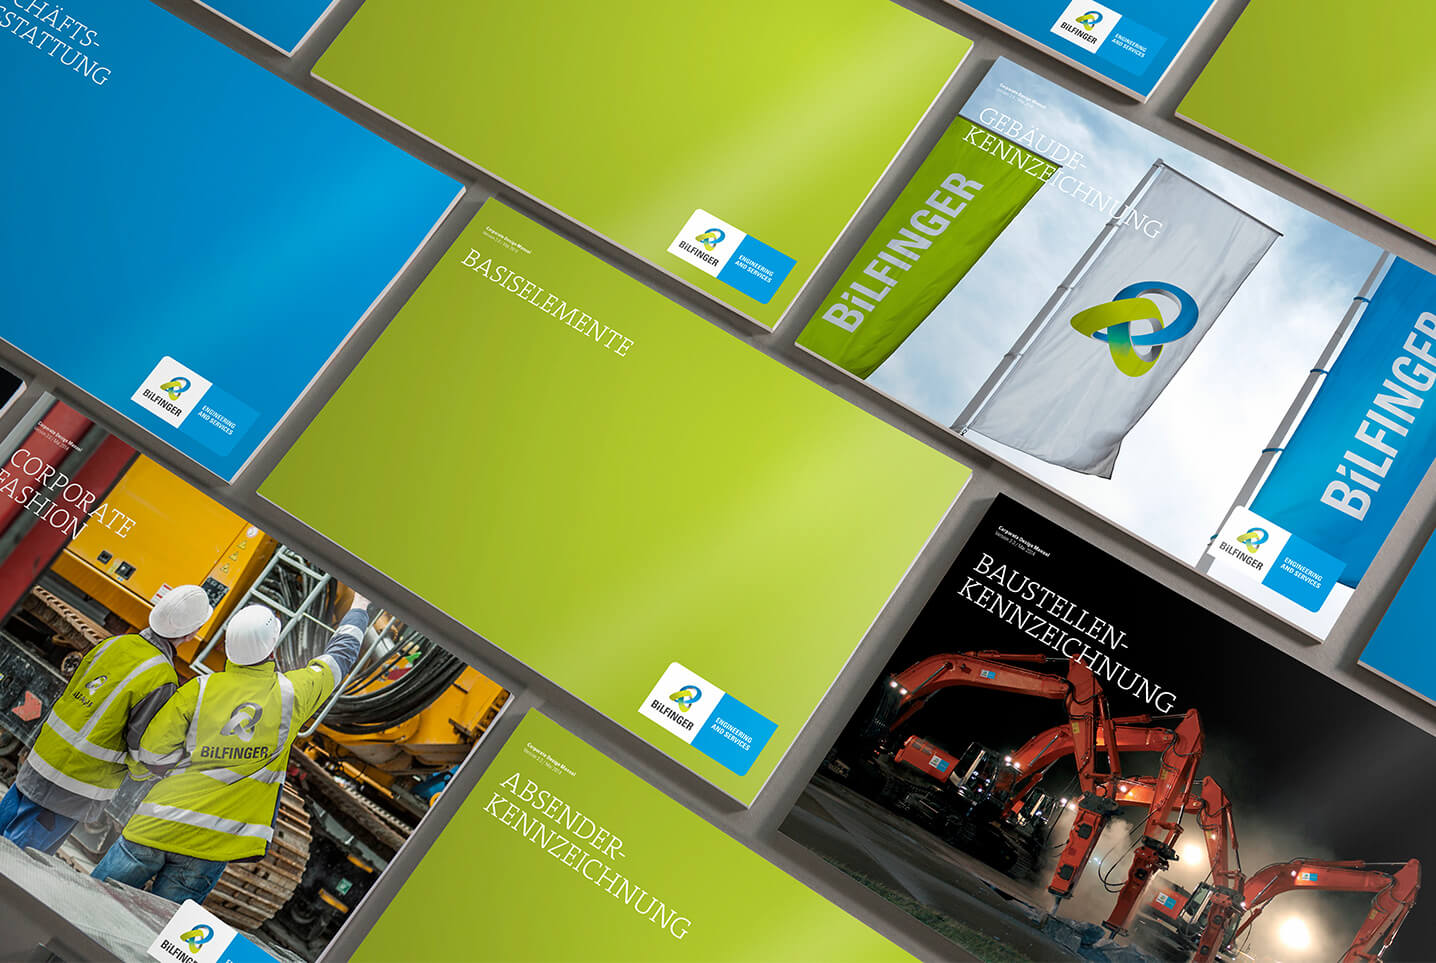 Bilfinger Corporate Design